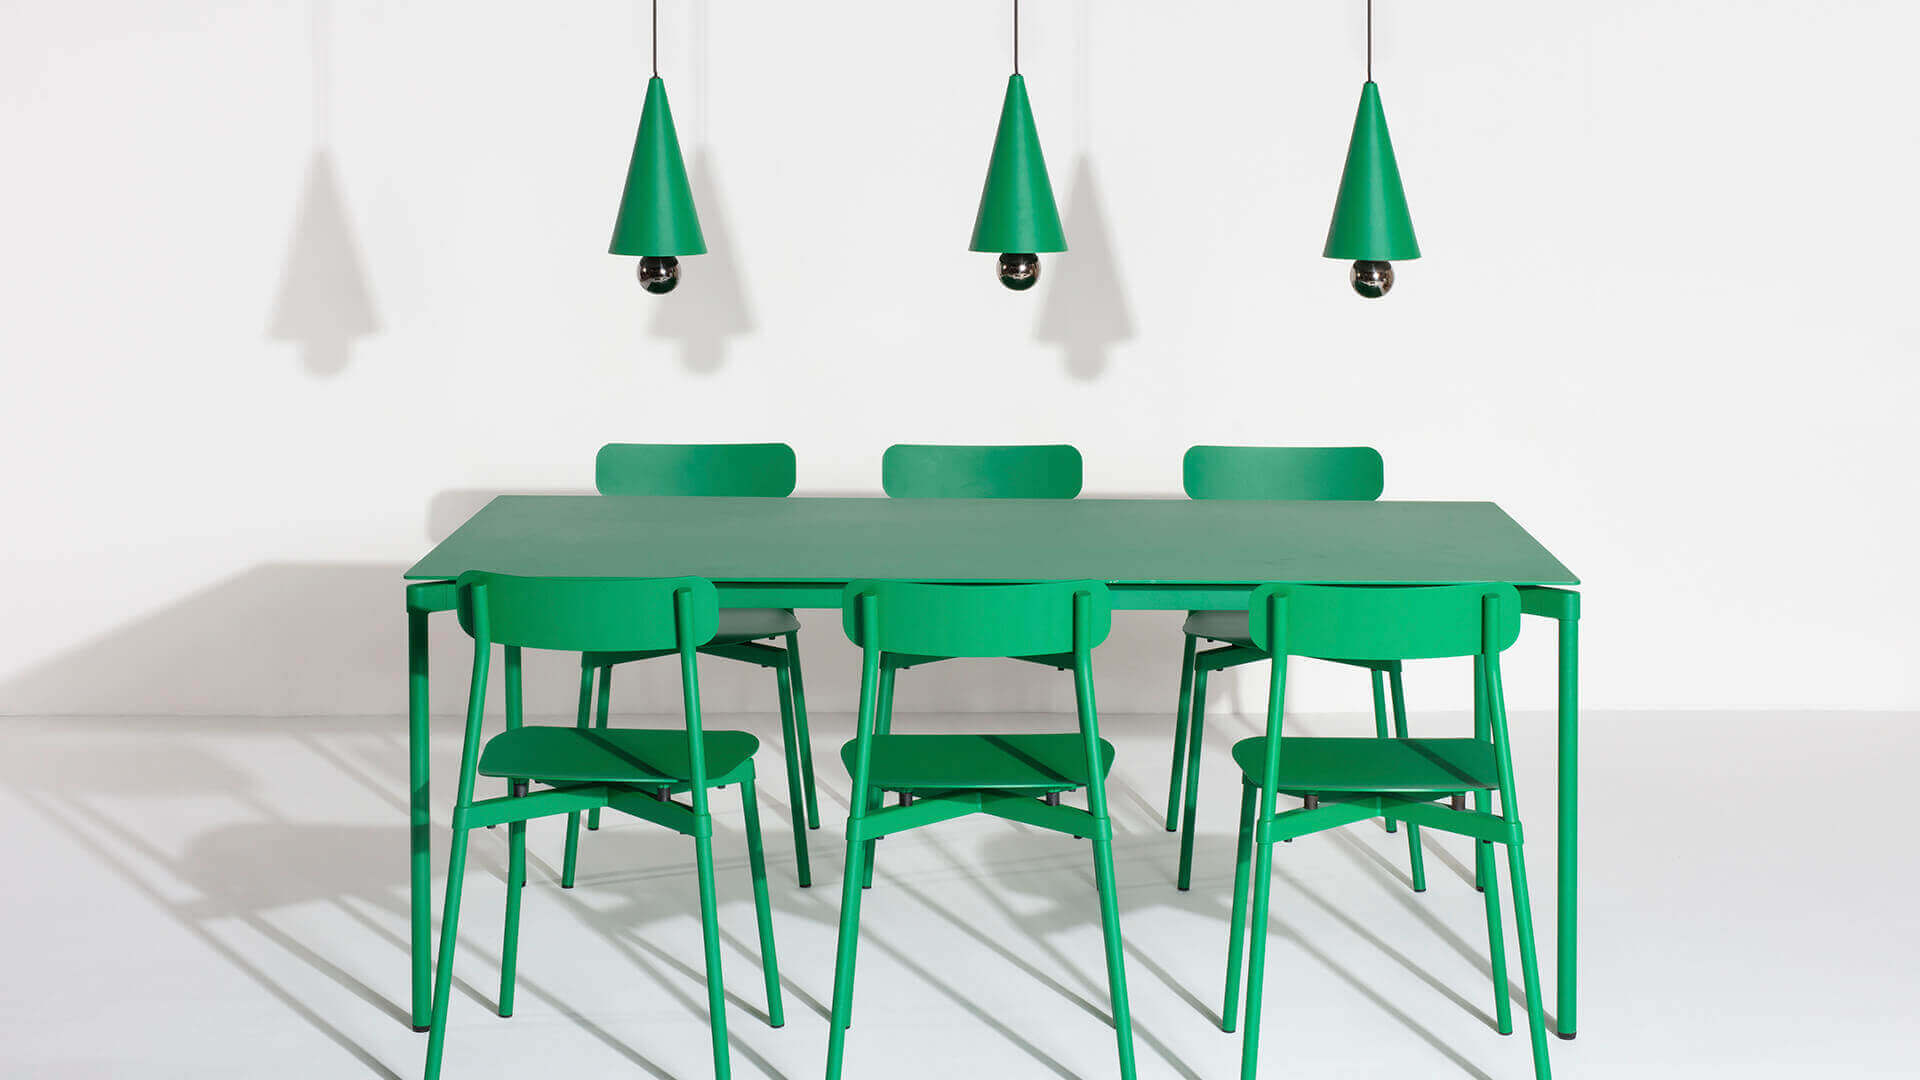 Fromme chairs in mint green and small Cherry LED lights -Petite Friture